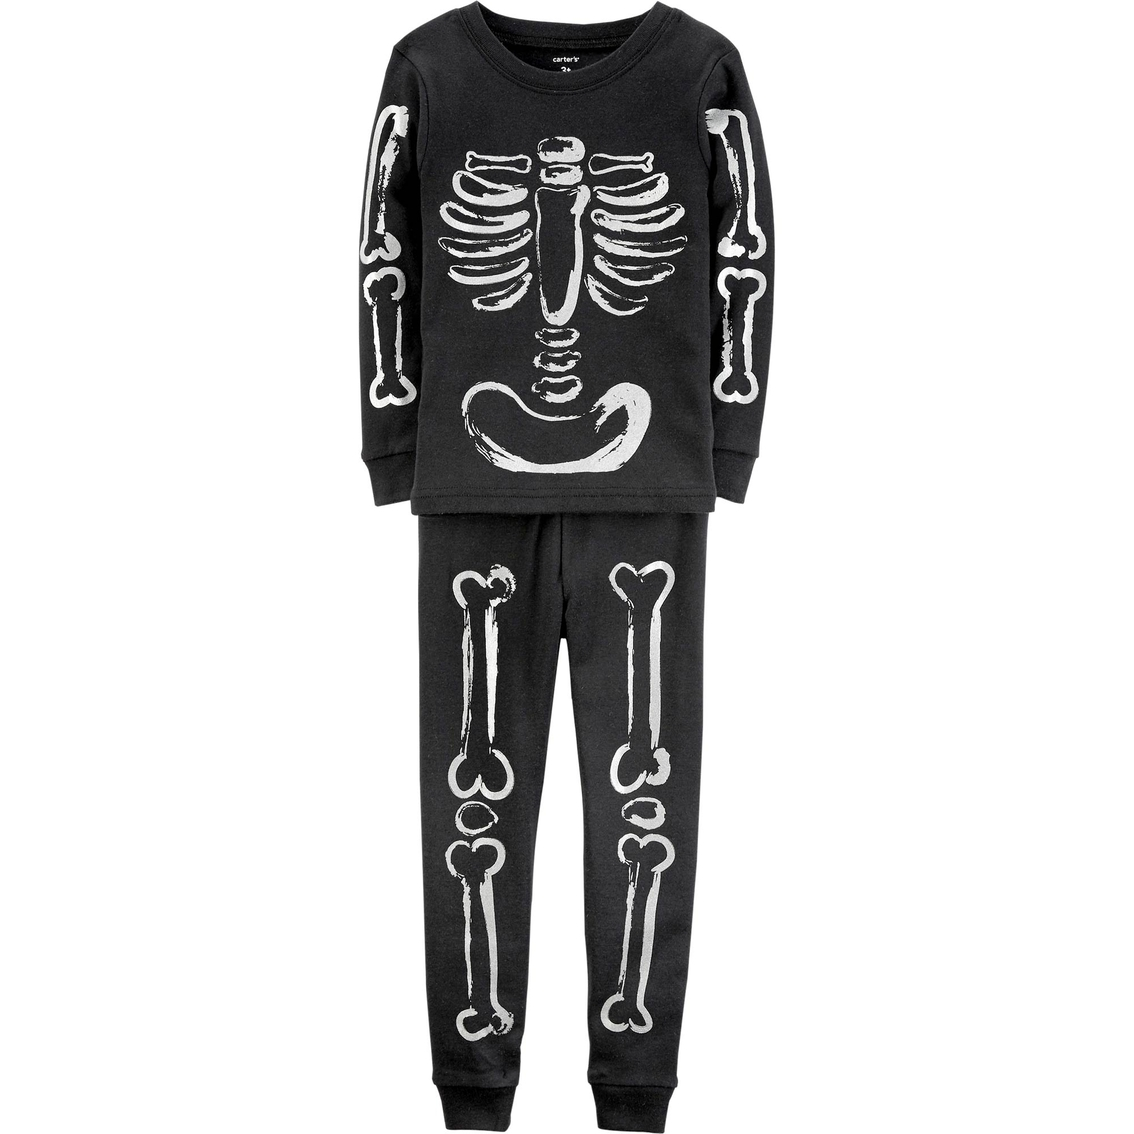 028067d5f5f9 Carter s Infant Boys 2 Pc. Snug Fit Halloween Skeleton Pajama Set ...